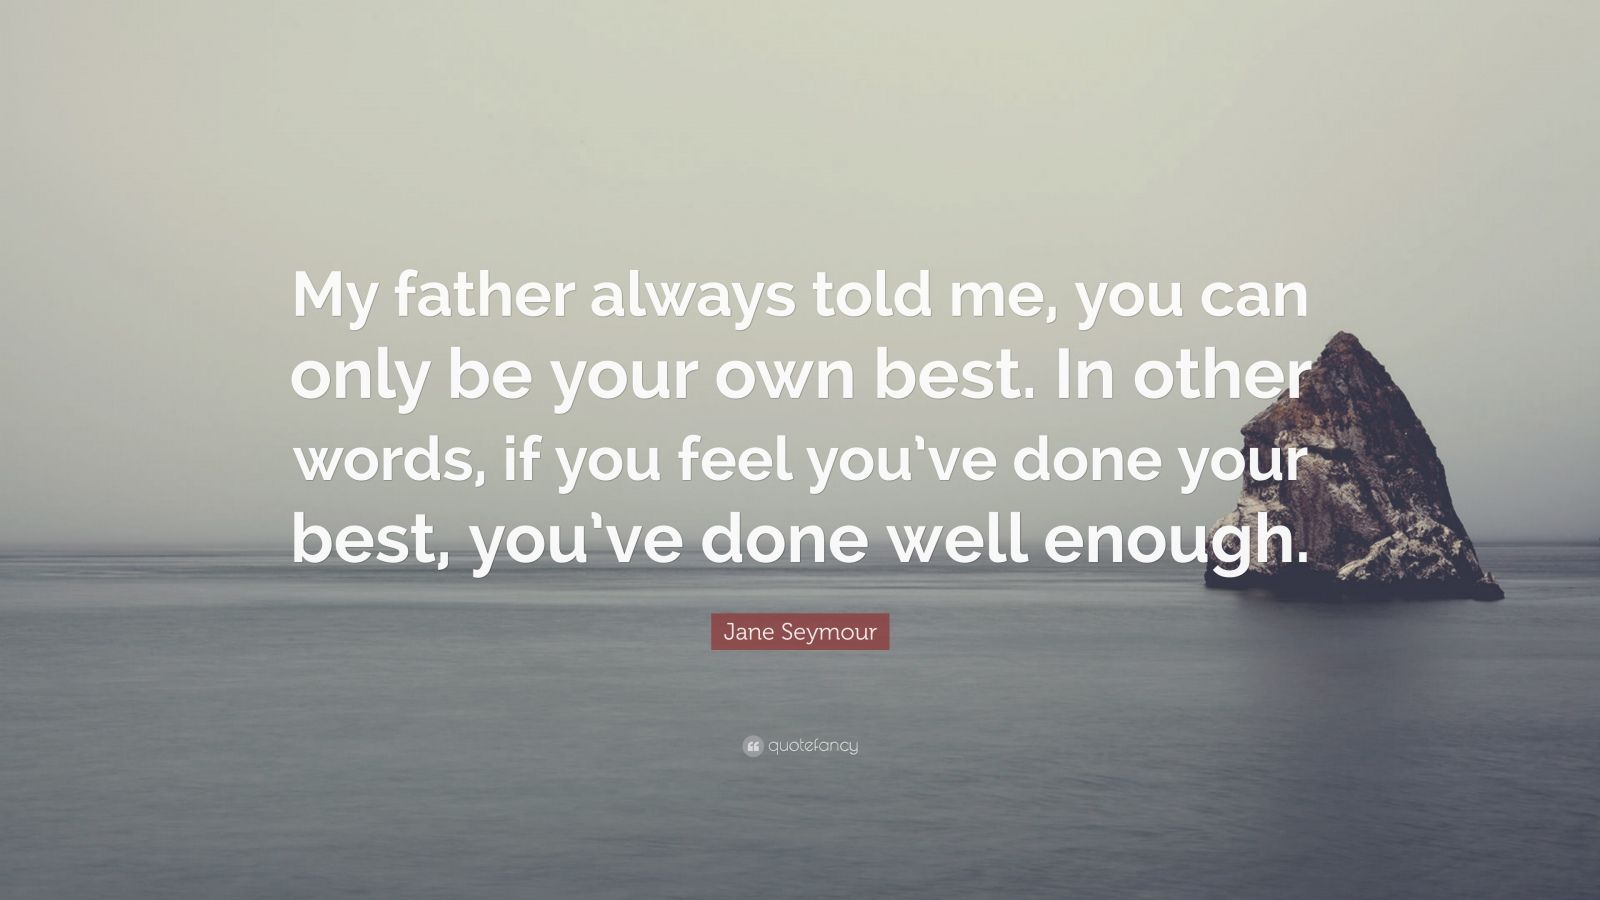 """Jane Seymour Quote: """"My father always told me, you can only be your own best. In other words, if you feel you've done your best, you've done well enough."""""""